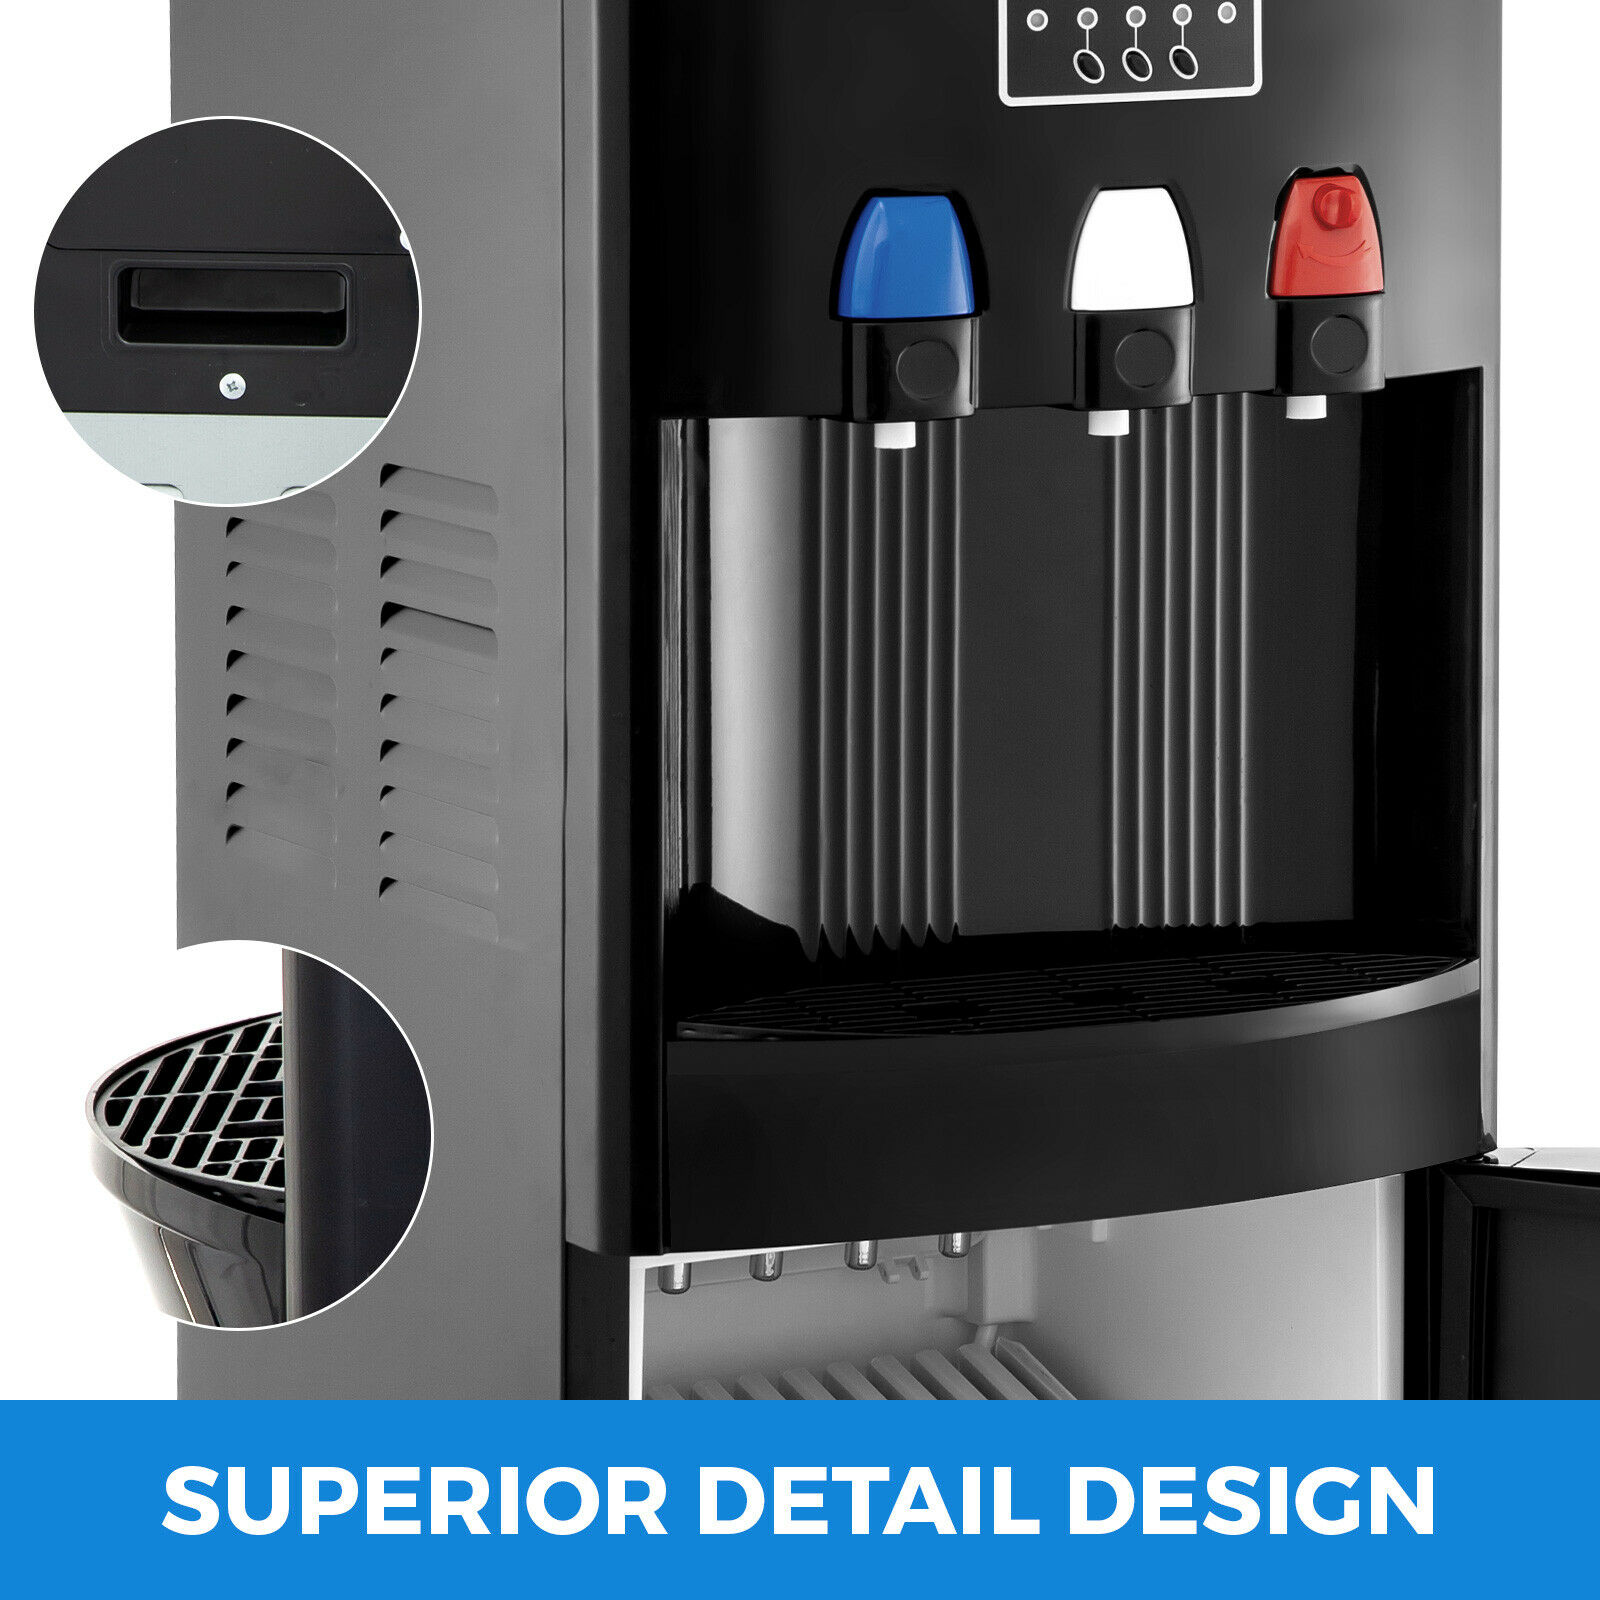 Built In Ice Maker 2 In 1 Water Dispenser Buy Ice Maker Water Dispenser Water Dispenser With Ice Maker Product On Alibaba Com